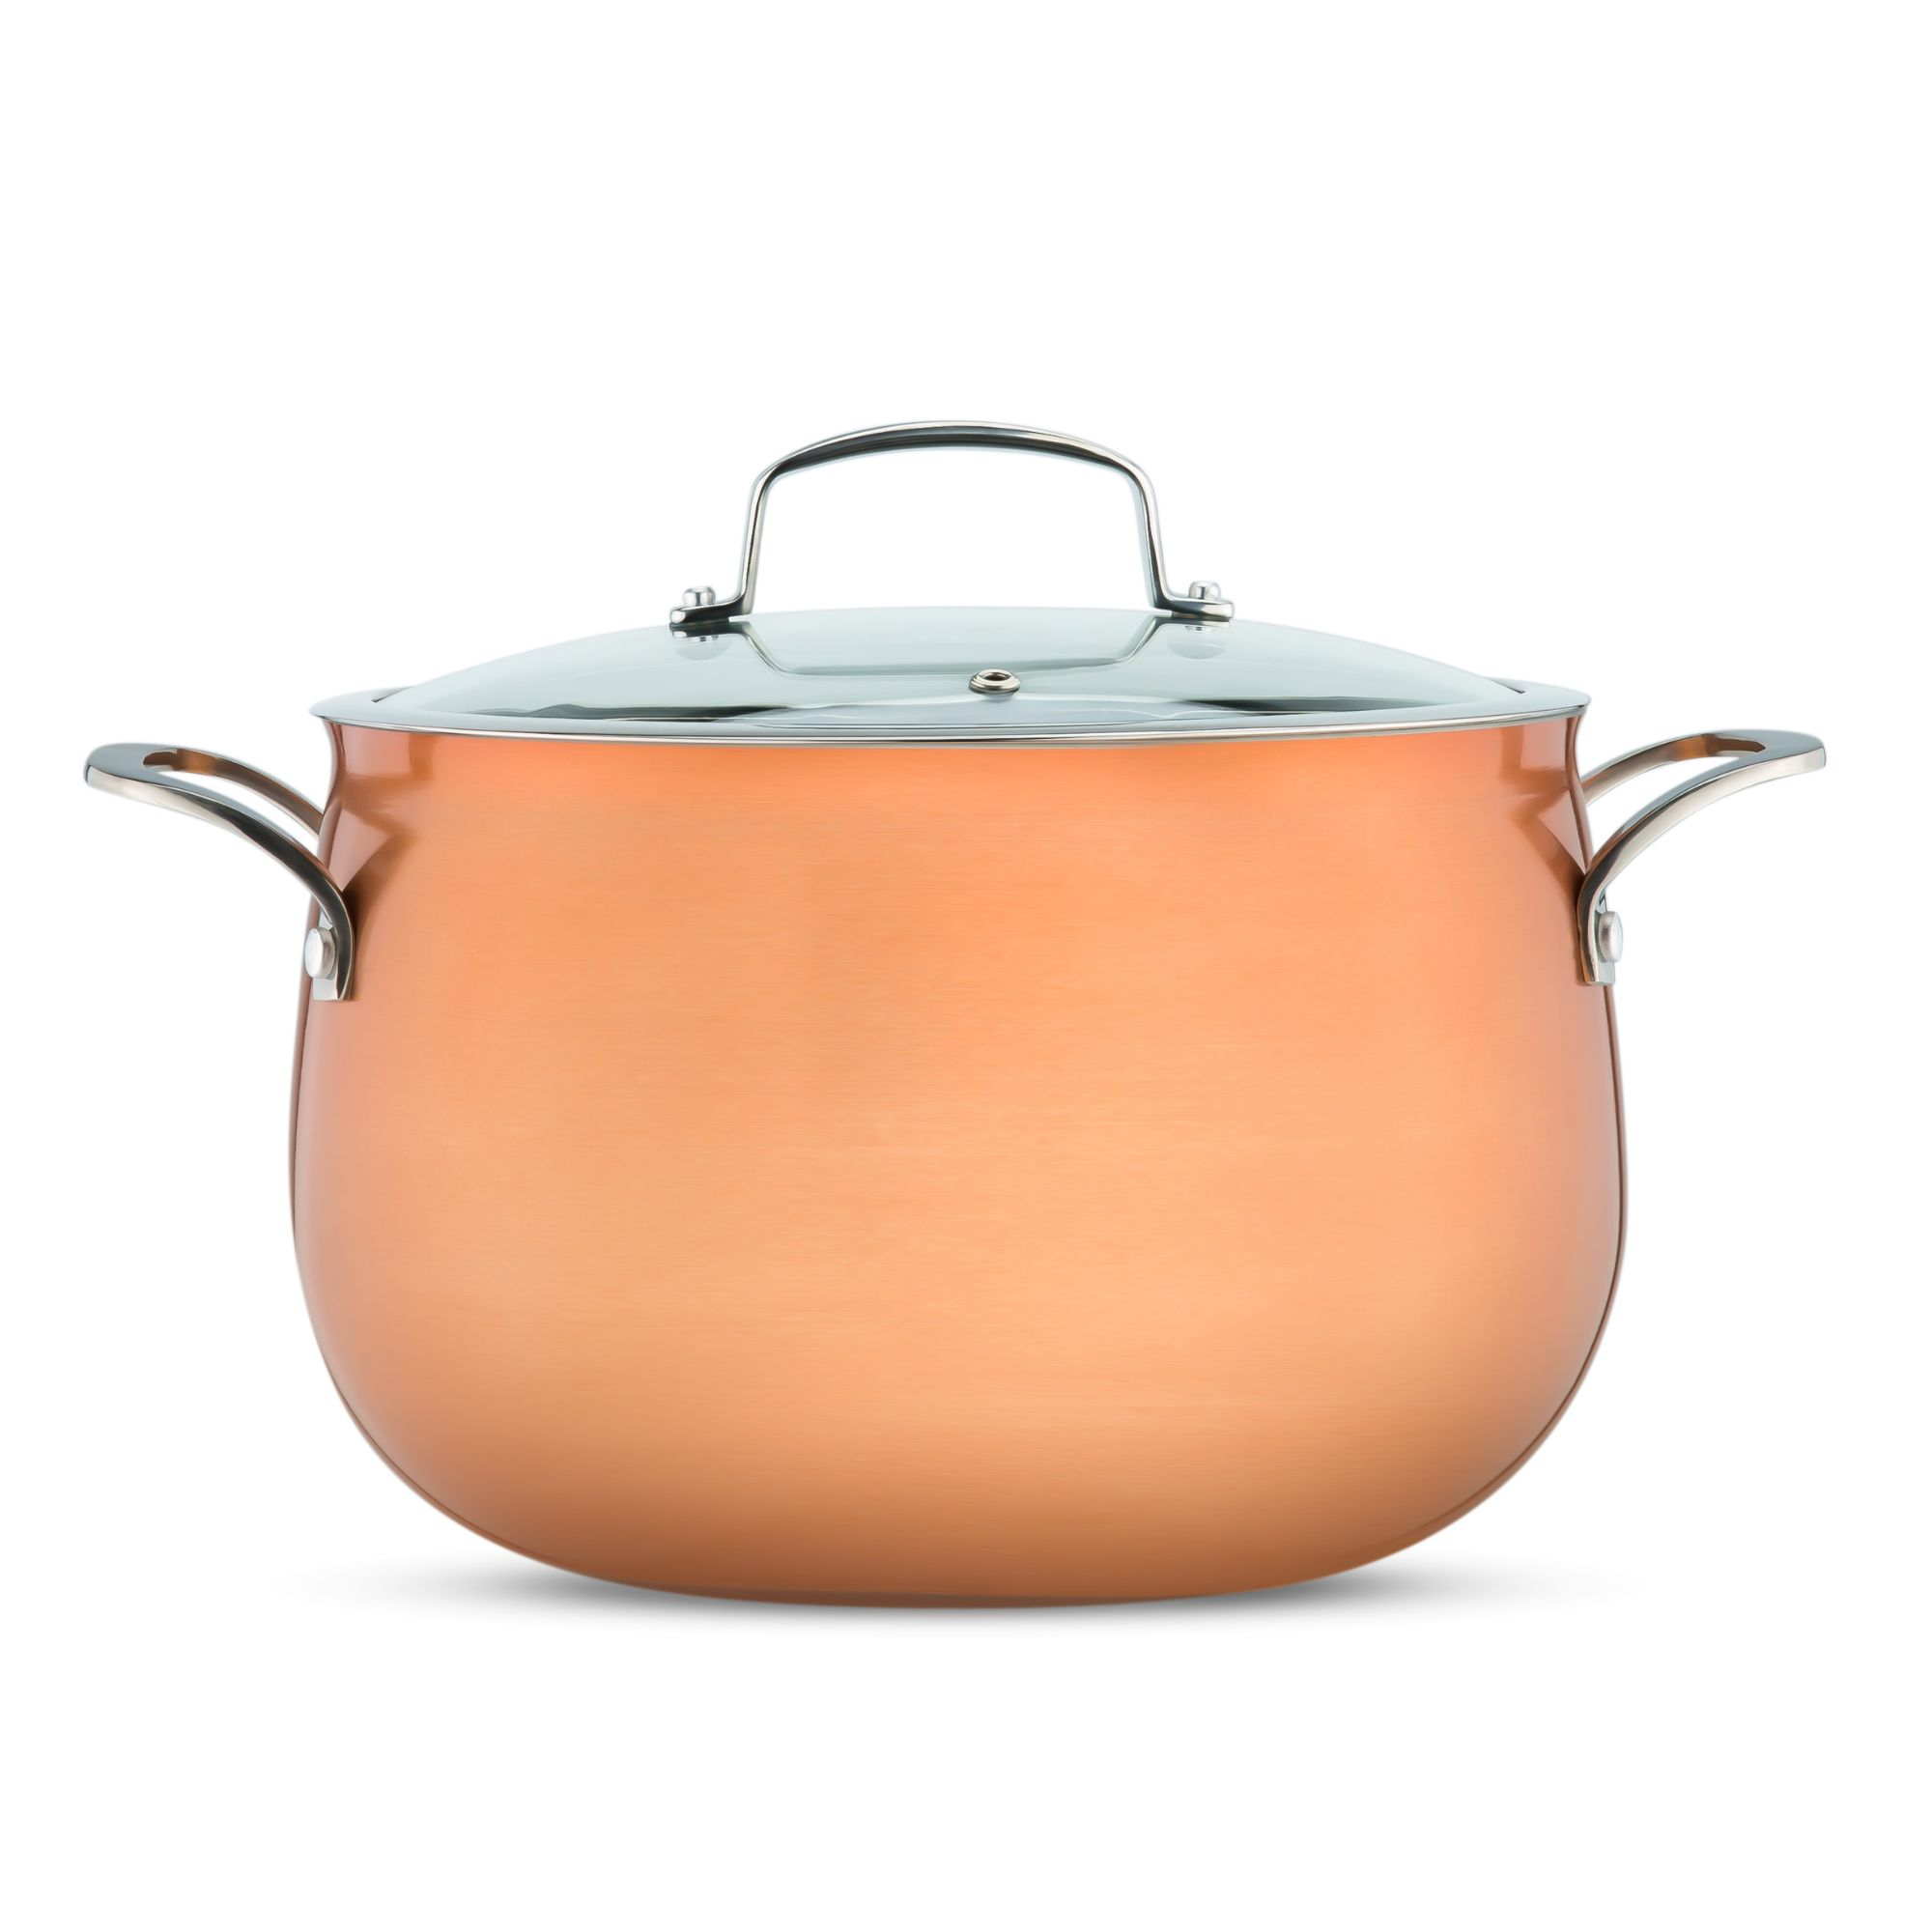 Copper Cookware Photo on a white background for eCommerce